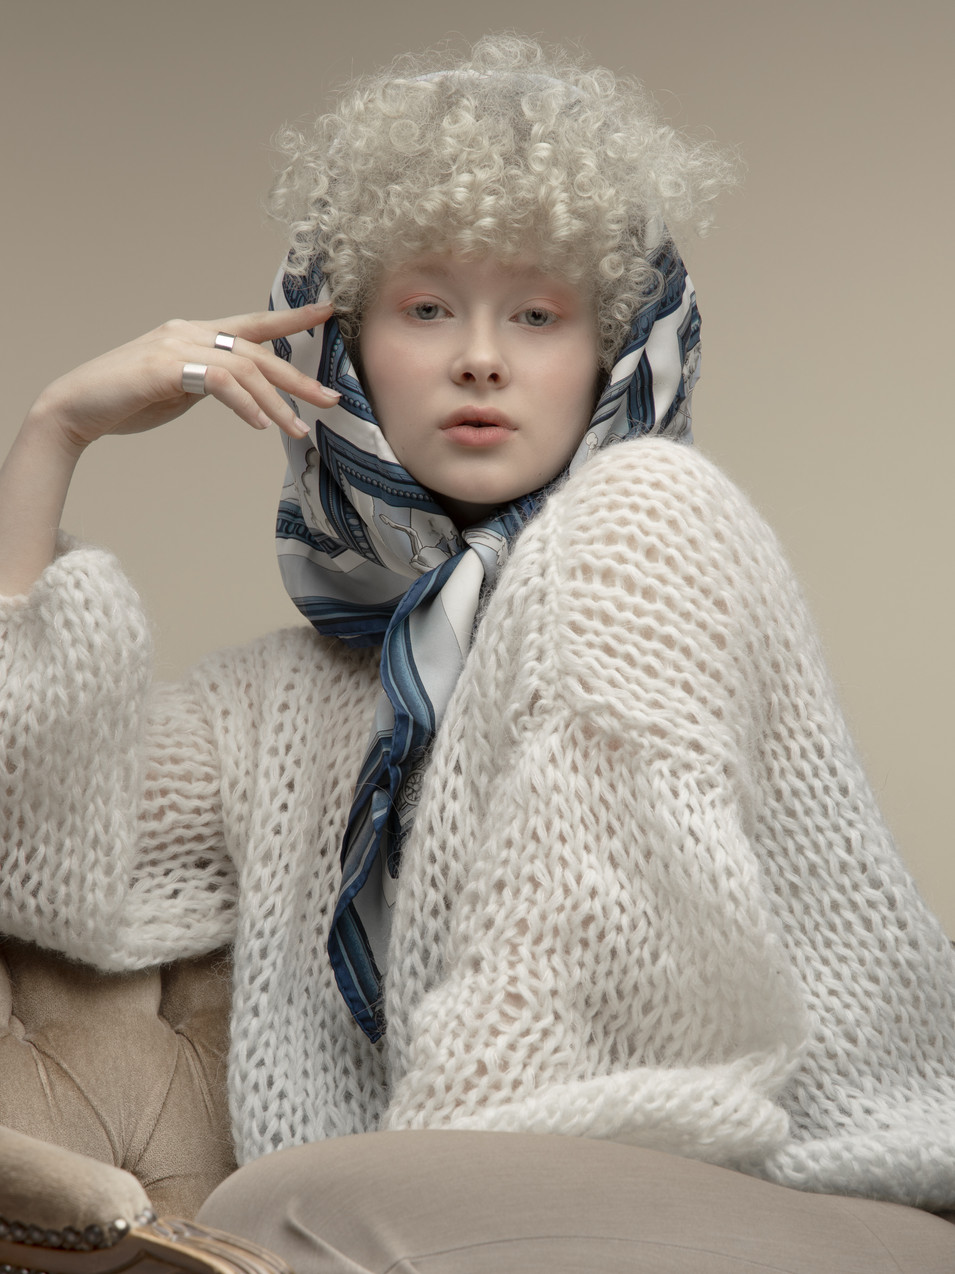 Editorial for Nordic Style Mag